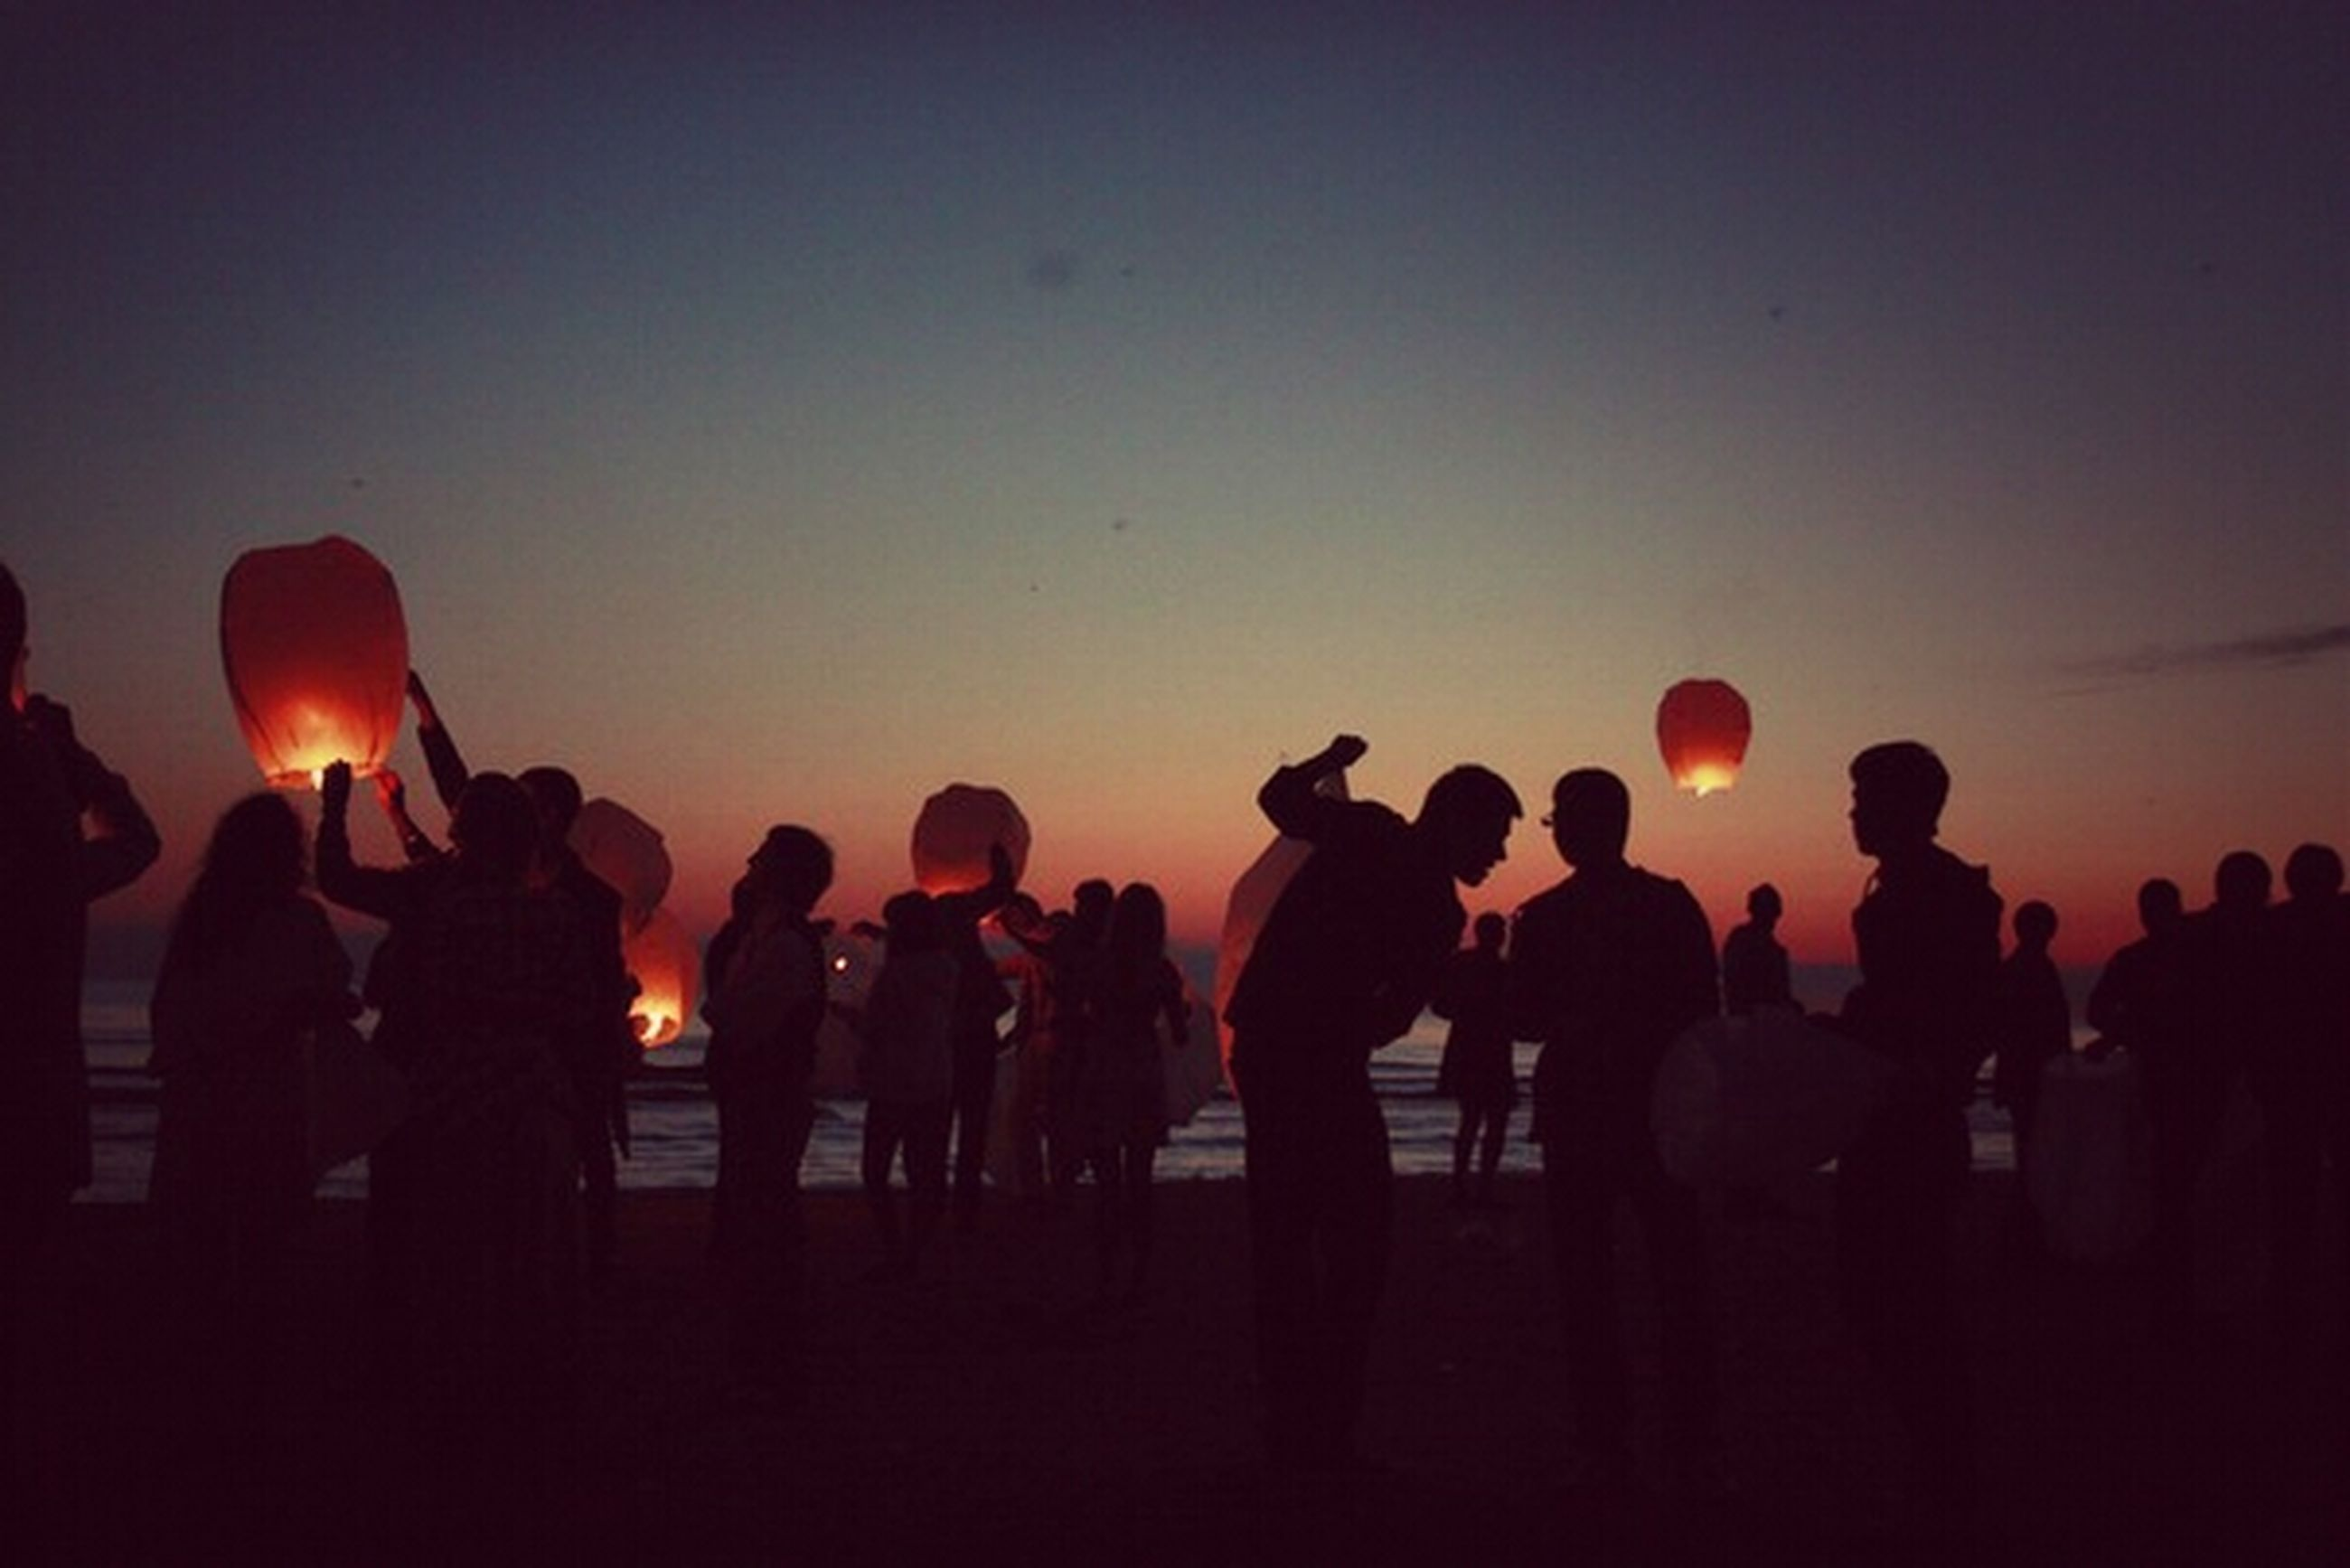 sunset, silhouette, men, large group of people, lifestyles, copy space, leisure activity, orange color, person, clear sky, togetherness, illuminated, standing, sky, dusk, enjoyment, dark, medium group of people, outdoors